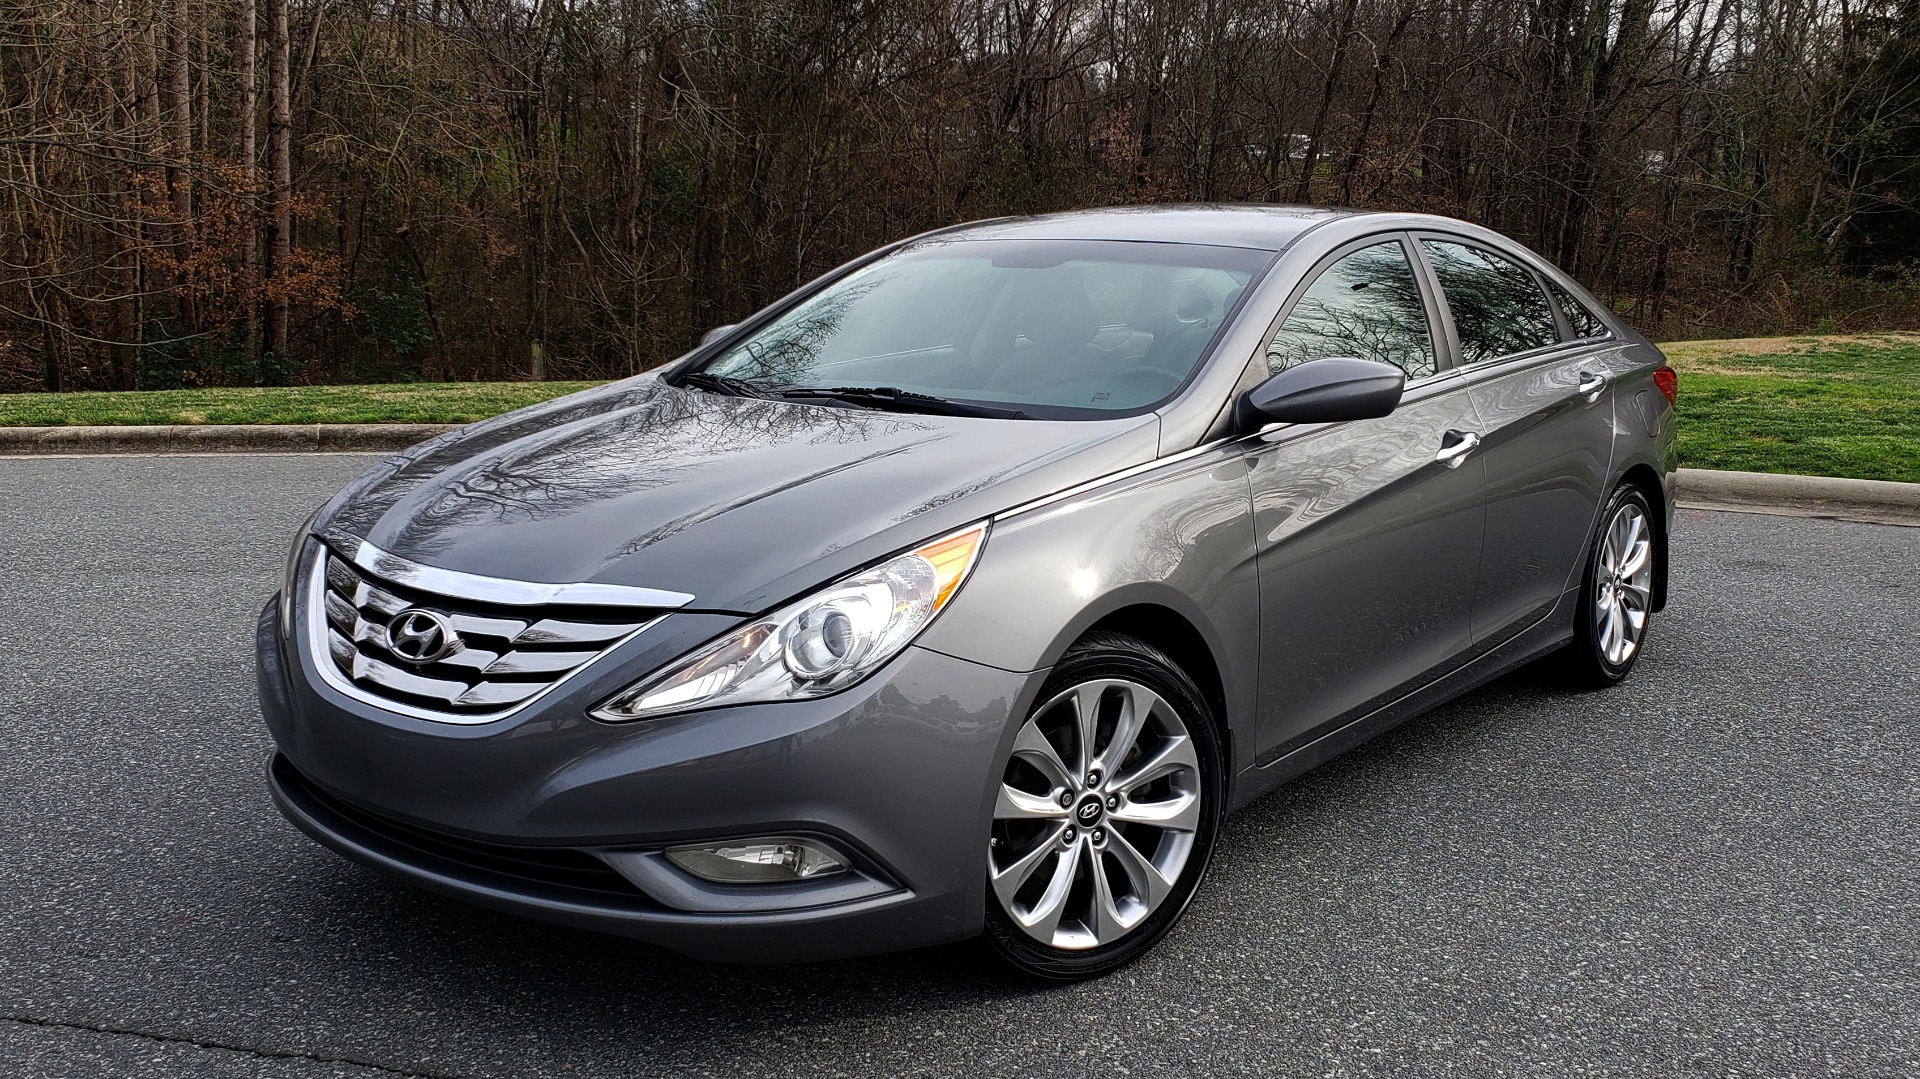 Used 2013 Hyundai SONATA SE AUTO / 2.4L 4-CYL / 6-SPD AUTO / VERY CLEAN for sale Sold at Formula Imports in Charlotte NC 28227 1